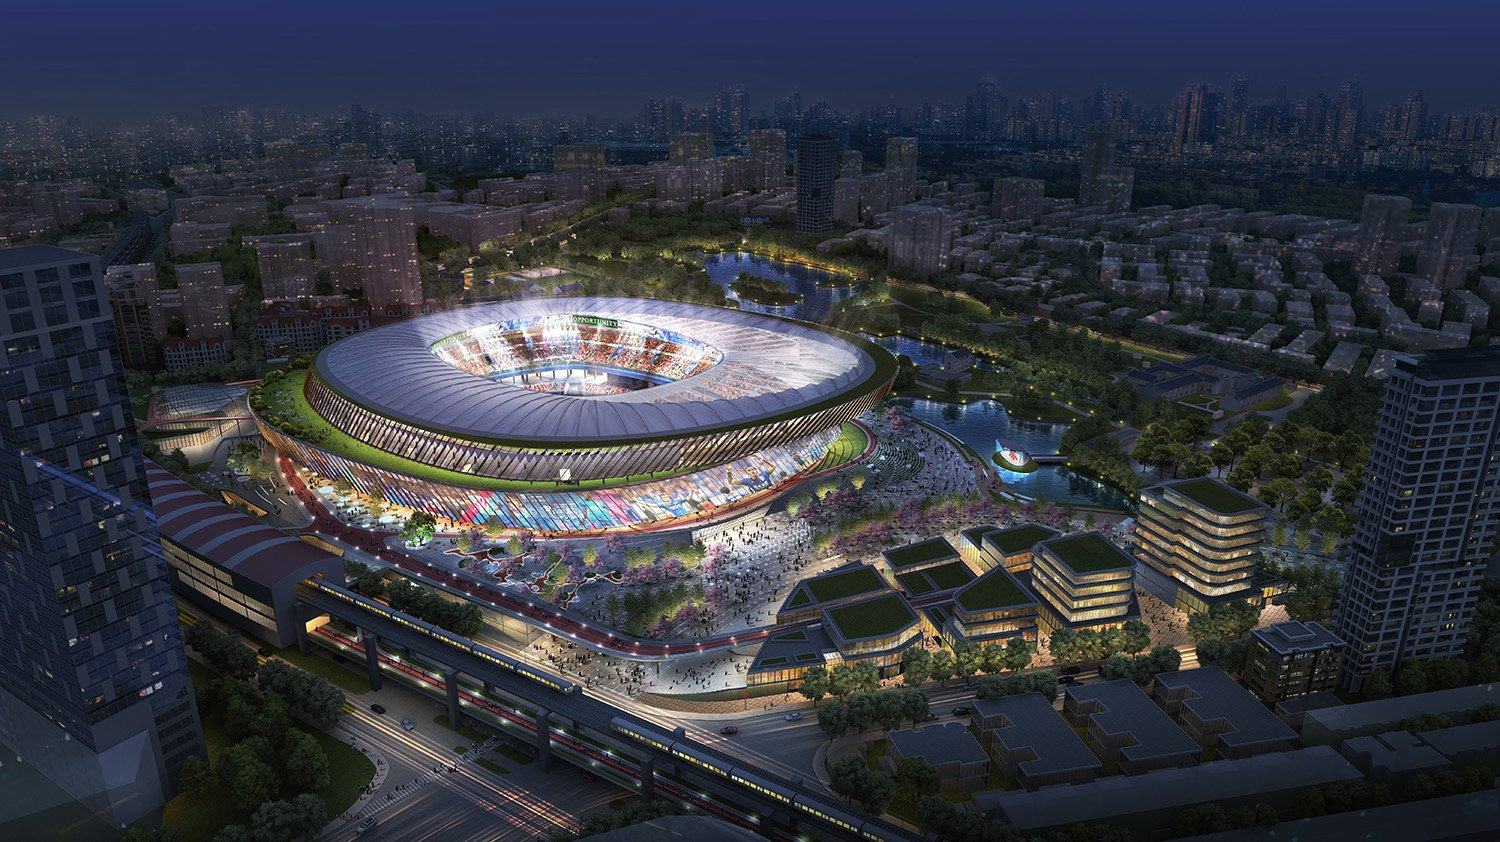 While stadiums traditionally serve the single purpose of hosting sporting events, the design  strives to reinvent sports arenas to serve as a space for all citizens. SASAKI